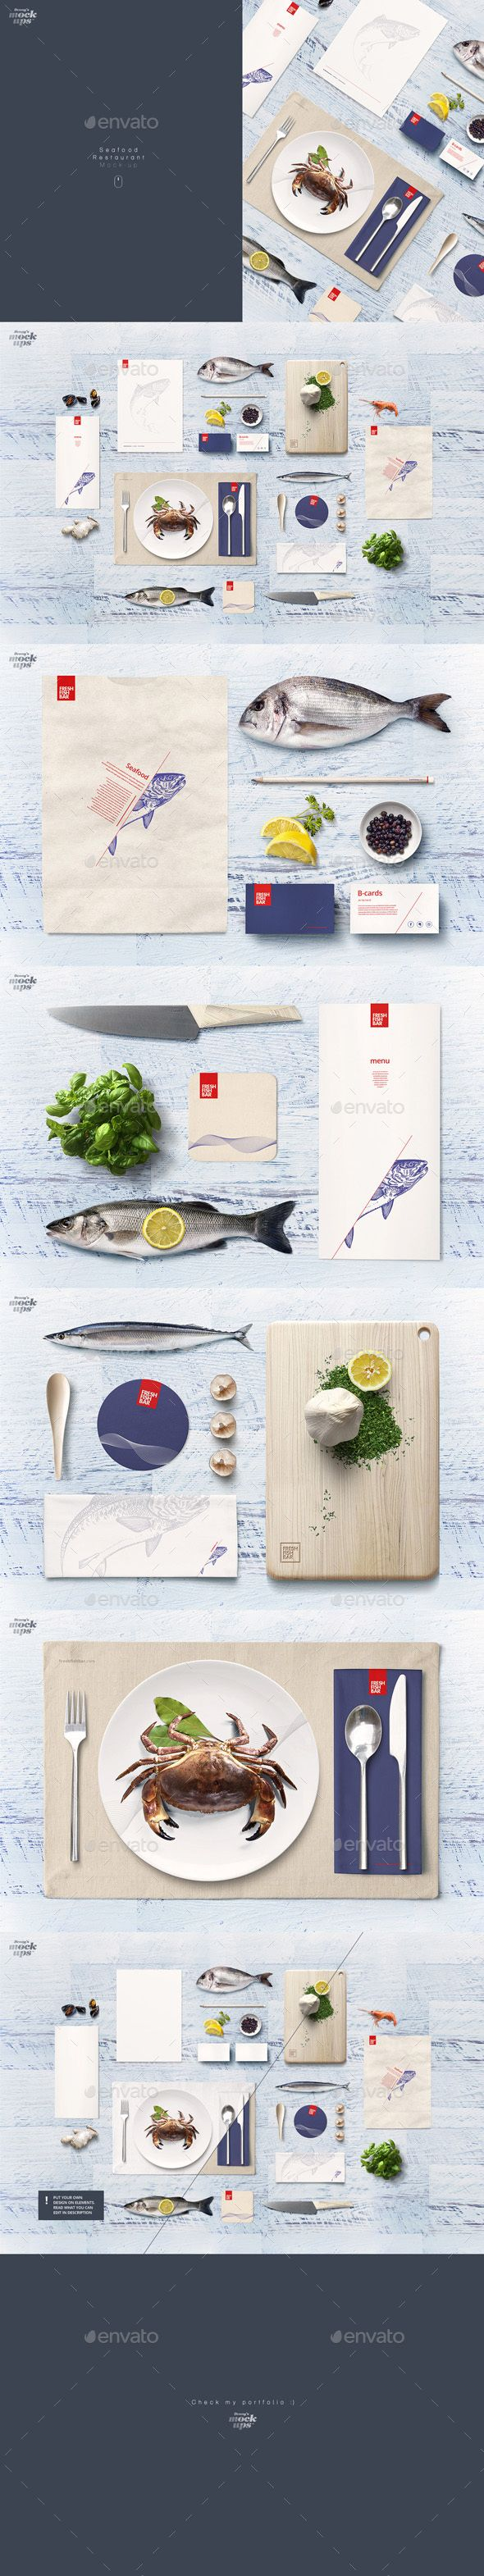 Fish & Seafood Restaurant Identity Mockup. Download here: http://graphicriver.net/item/fish-seafood-restaurant-identity-mockup/16525204?ref=ksioks